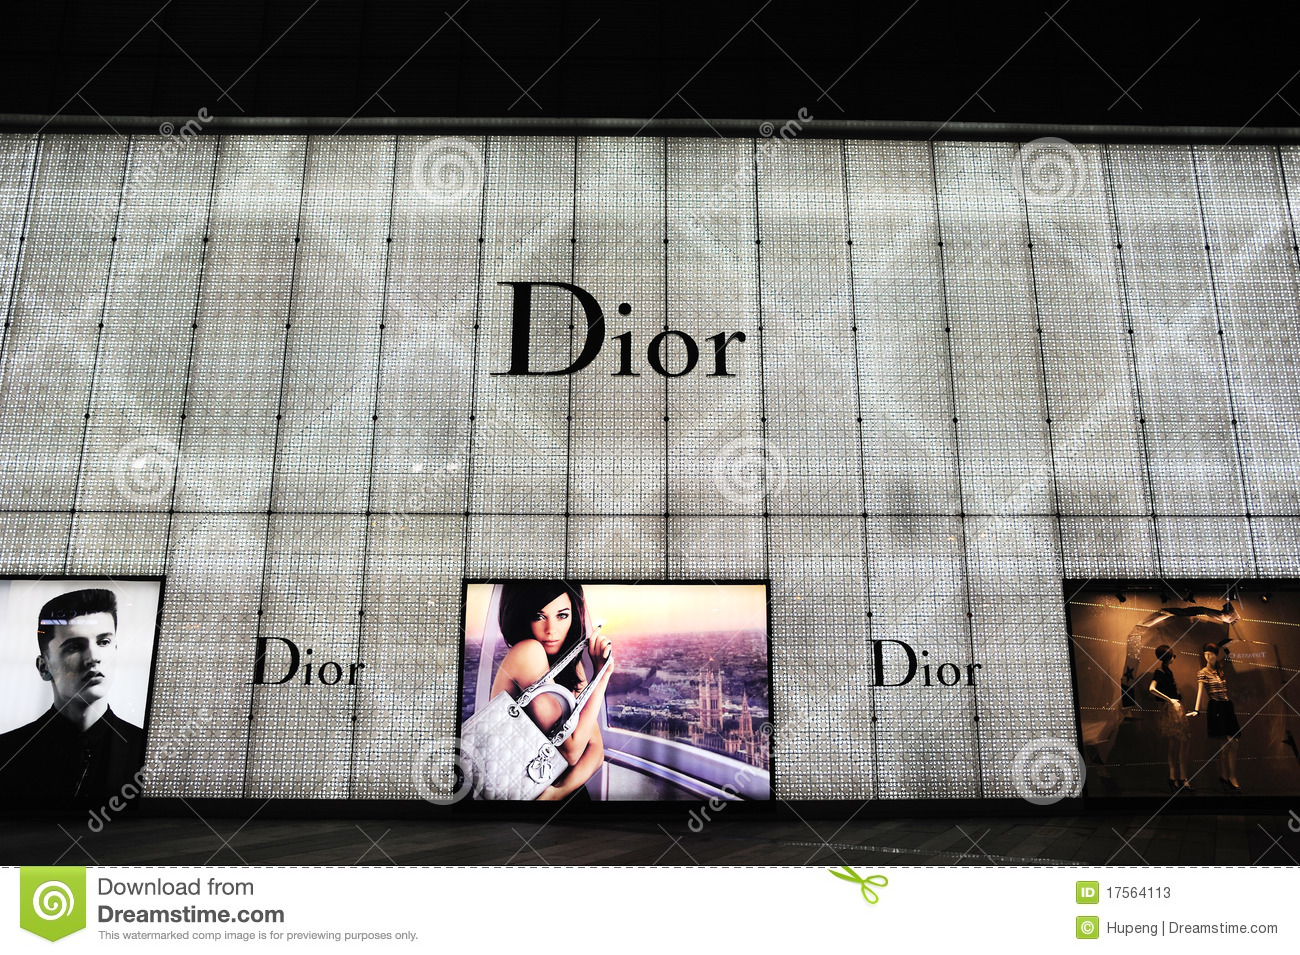 Boutique de la manera de Dior